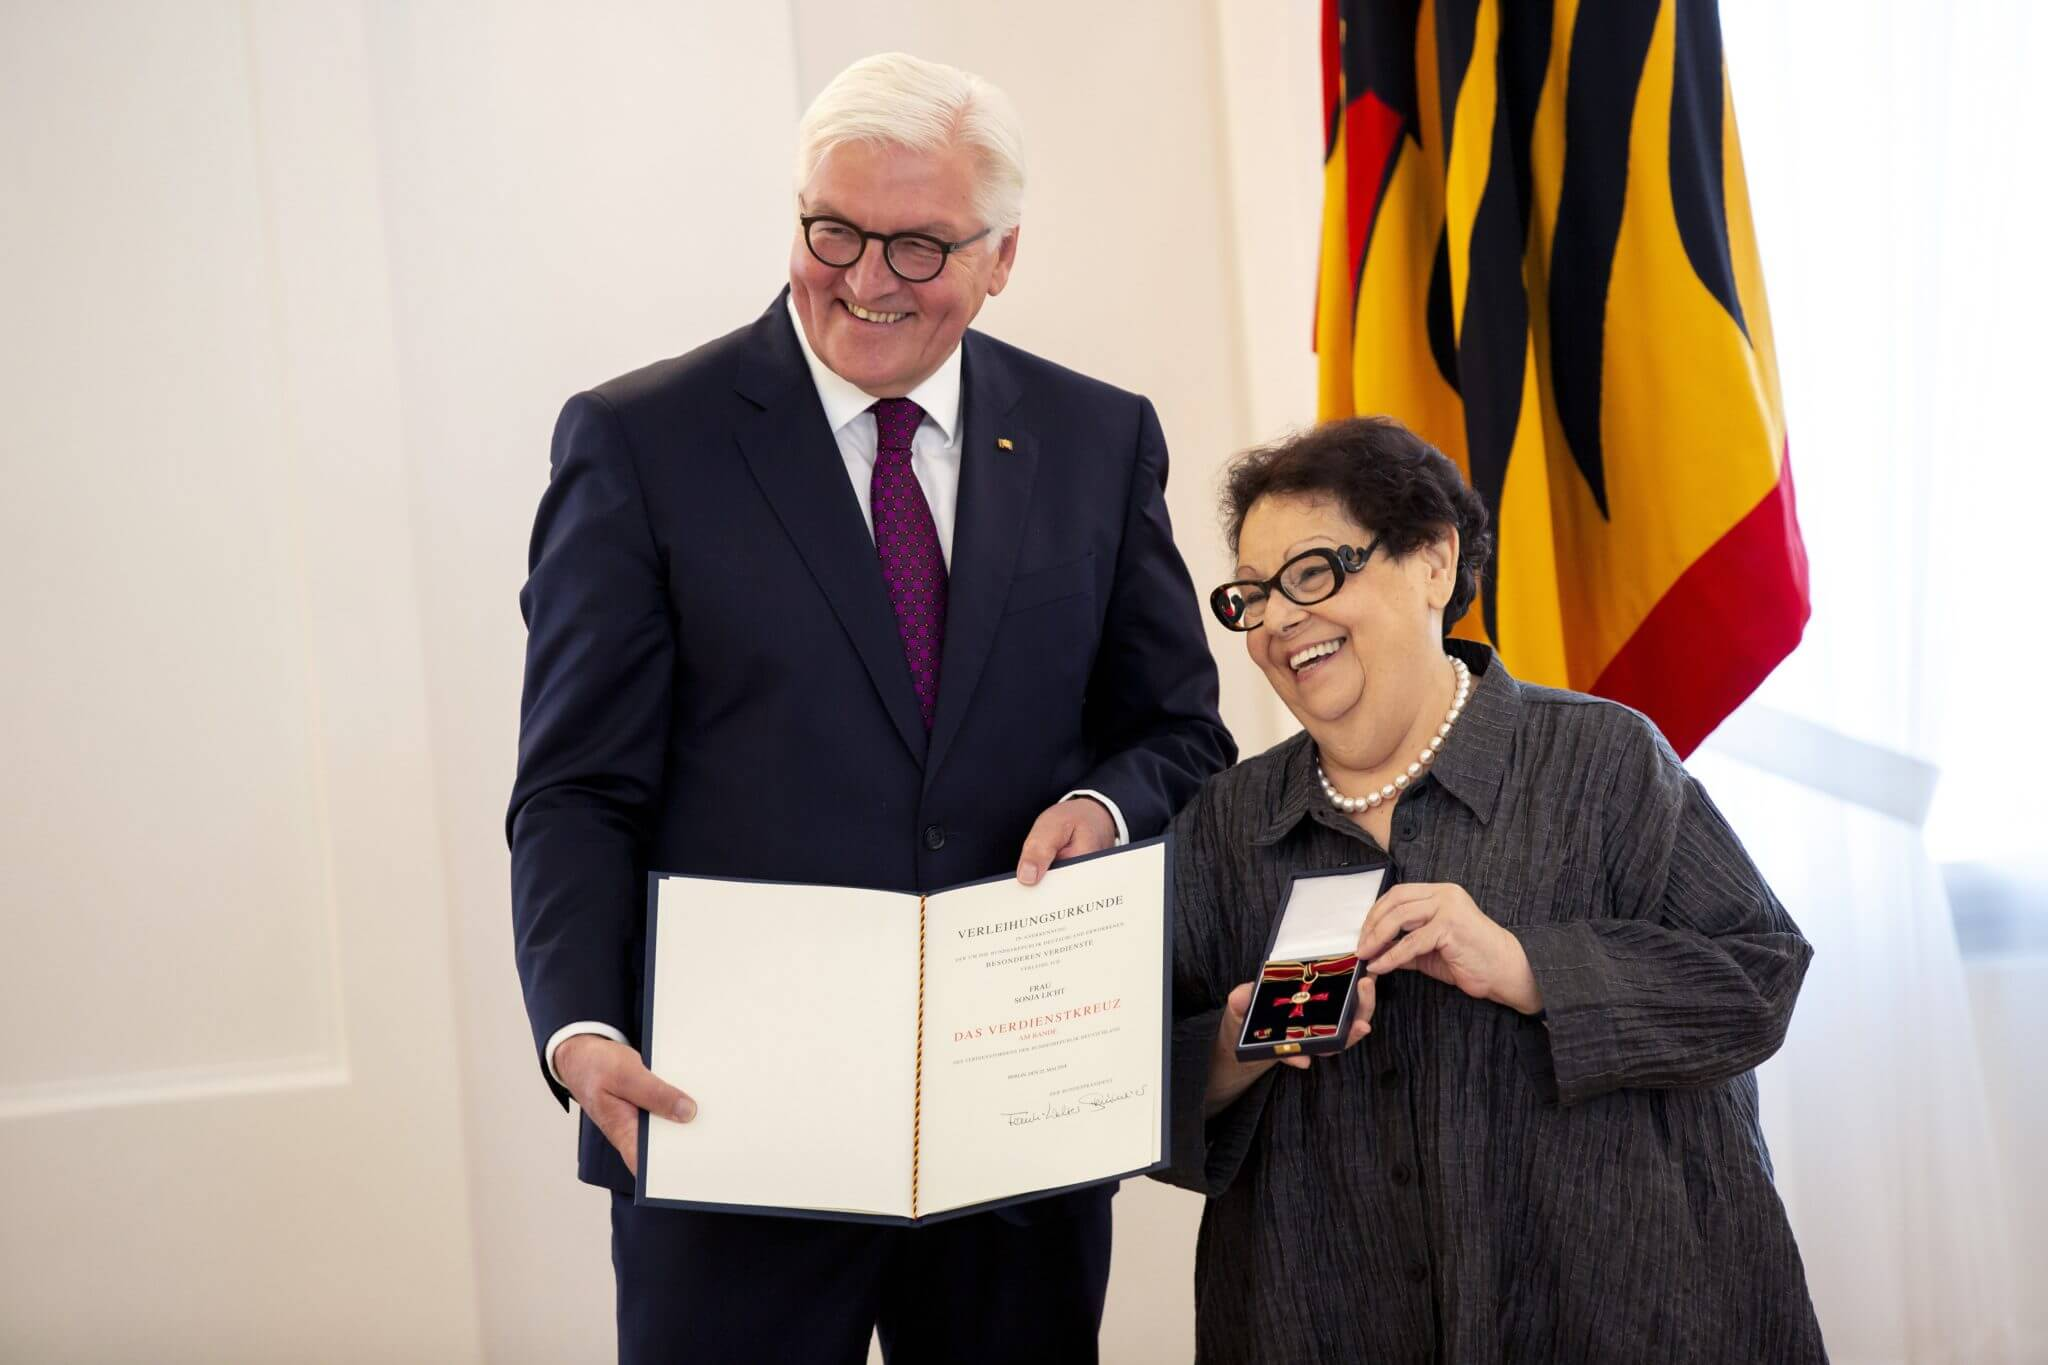 German Ambassador's reception for Sonja Licht